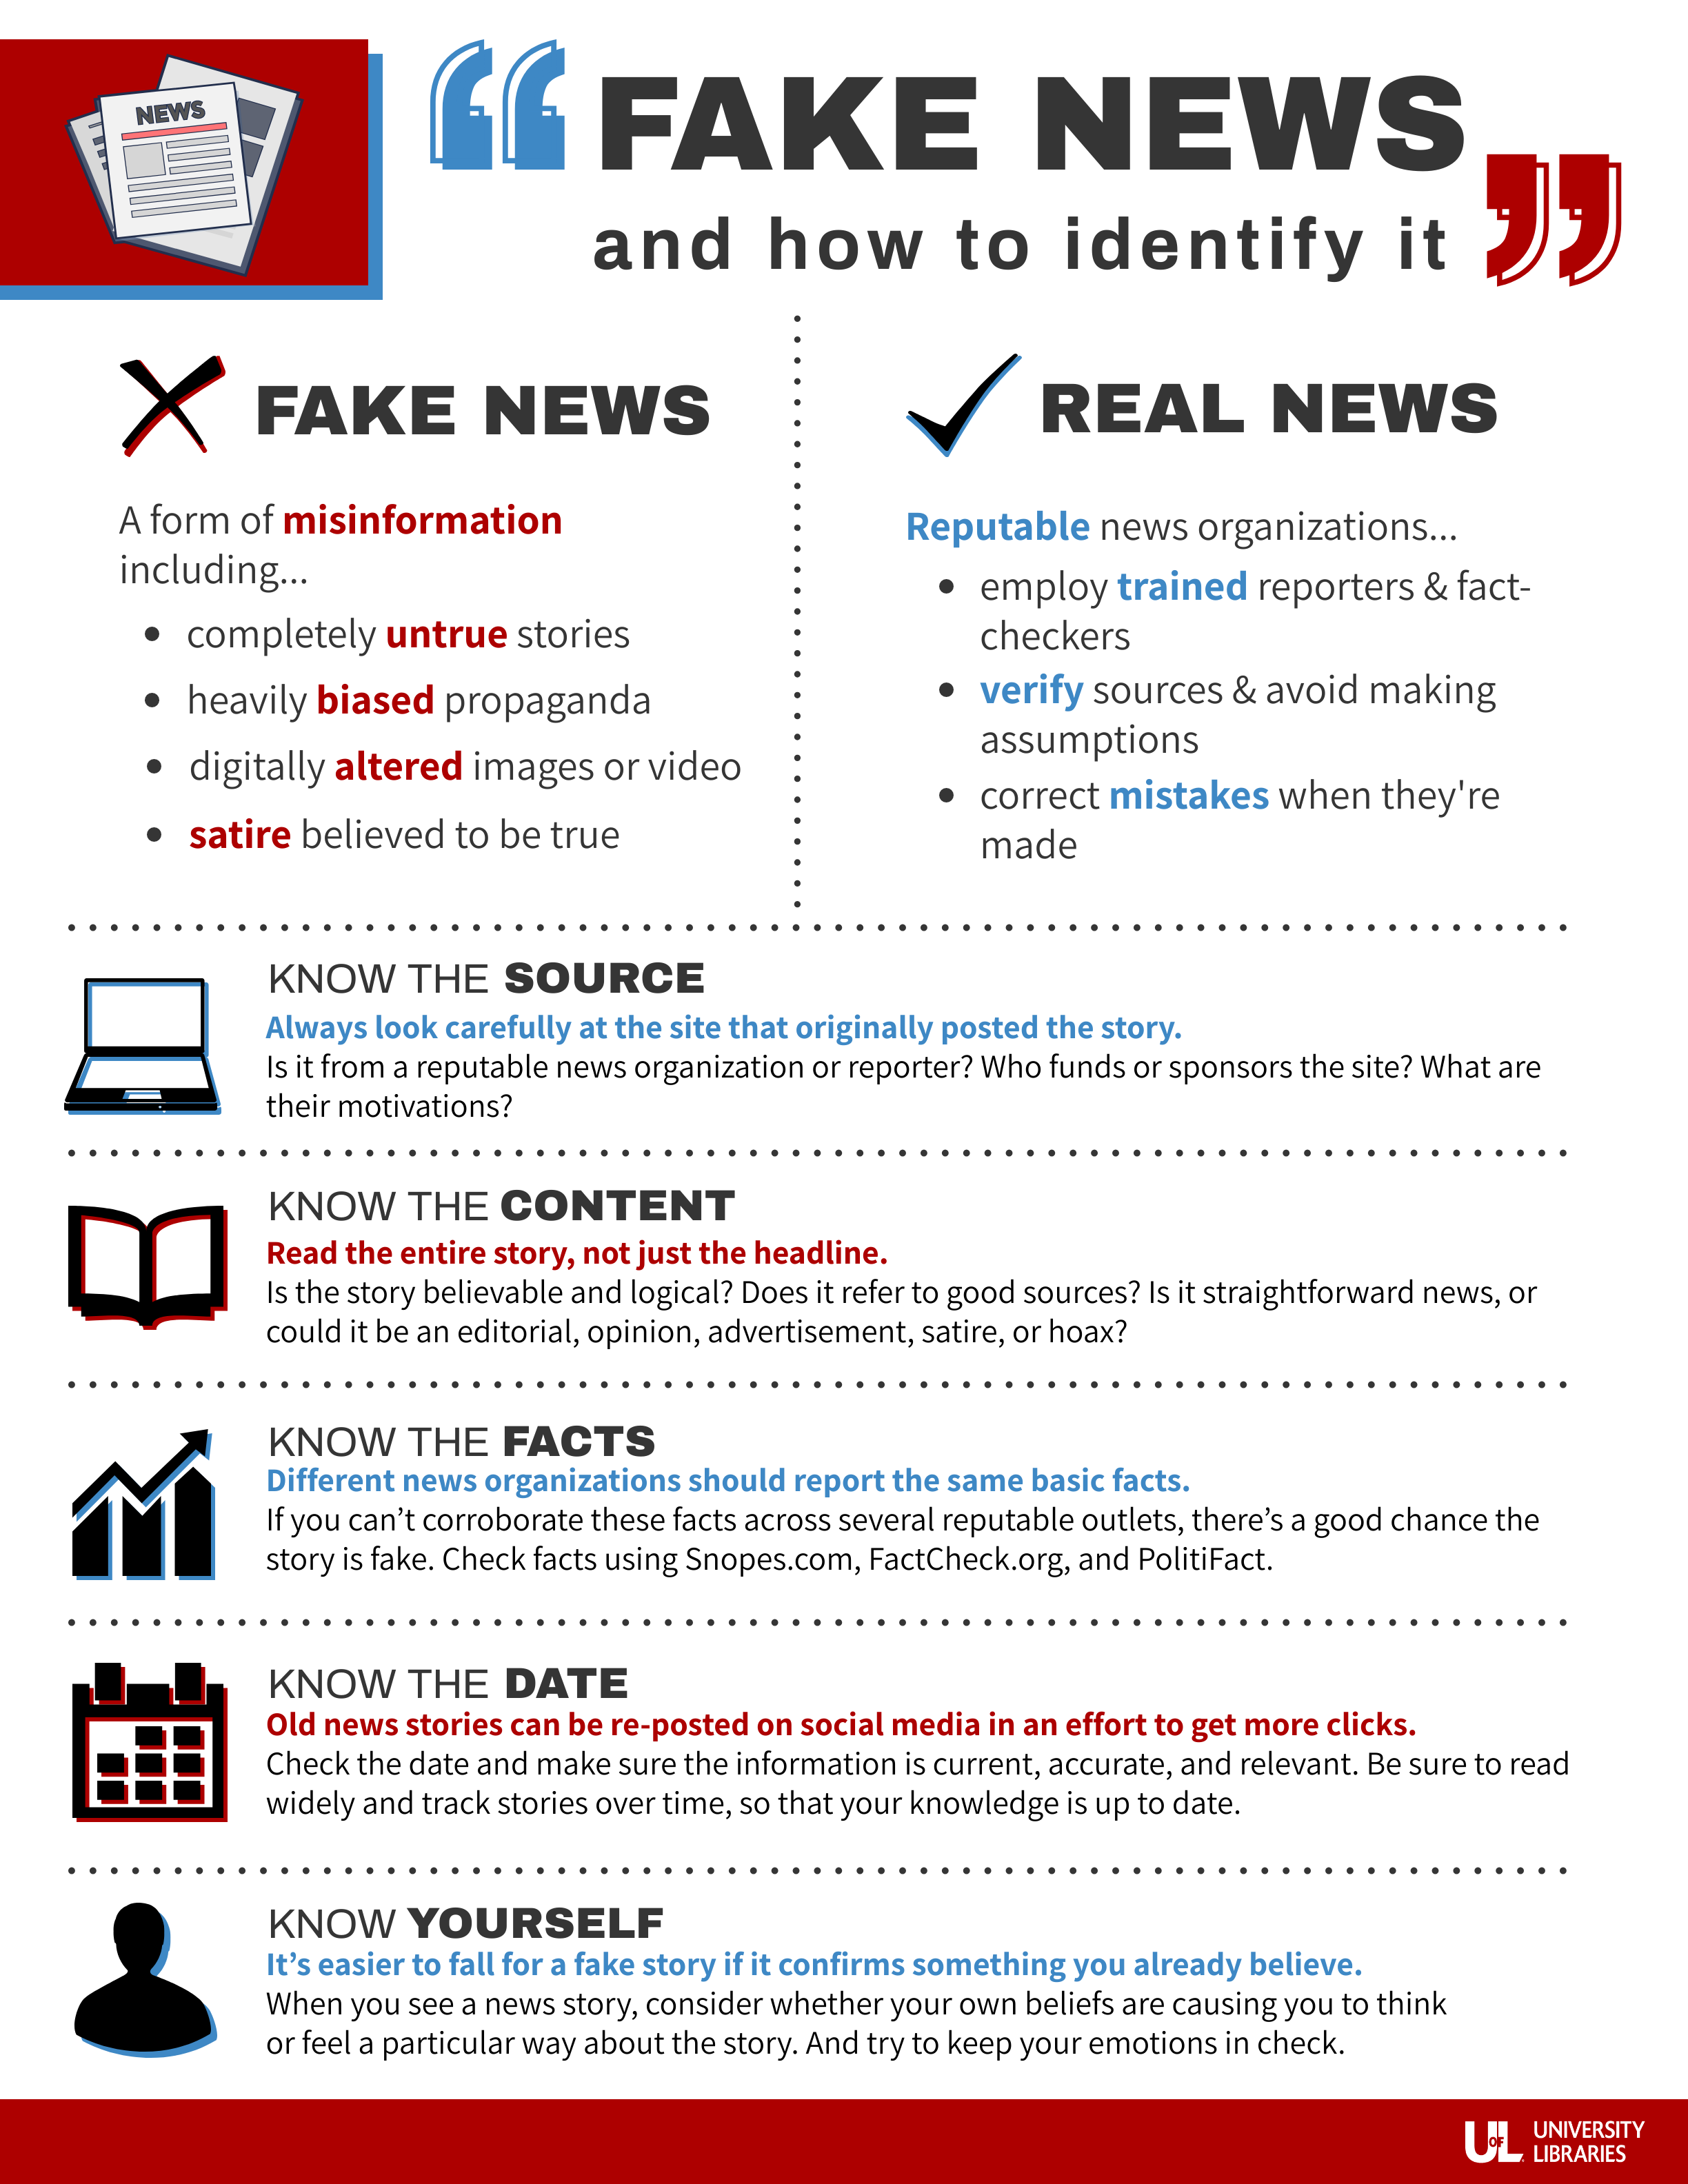 Fake News and How to Identify It  Fake News: a form of misinformation including completely untrue stories, heavily biased propaganda, digitally altered images or video, satire believed to be true.Real News: reputable news organizations employ trained reporters and fact-checkers, verify sources and avoid making assumptions, correct mistakes when they're made.  Know the Source: Always look carefully at the site that originally posted the story. Is it from a reputable news organization or reporter? Who funds or sponsors the site? What are their motivations?  Know the Content: Read the entire story, not just the headline. Is the story believable and logical? Does it refer to good sources? Is it straightforward news, or could it be an editorial, opinion, advertisement, satire, or hoax?  Know the Facts: Different news organizations should report the same basic facts. If you can't corroborate these facts across several reputable outlets, there's a good chance the story is fake. Check facts using Snopes.com, FactCheck.org, and PolitiFact.  Know the Date: Old news stories can be re-posted on social media in an effort to get more clicks. Check the date and make sure the information is current, accurate, and relevant. Be sure to read widely and track stories over time, so that your knowledge is up to date.  Know Yourself: It's easier to fall for a fake story if it confirms something you already believe. When you see a news story, consider whether your own beliefs are causing you to think or feel a particular way about the story. And try to keep your emotions in check.